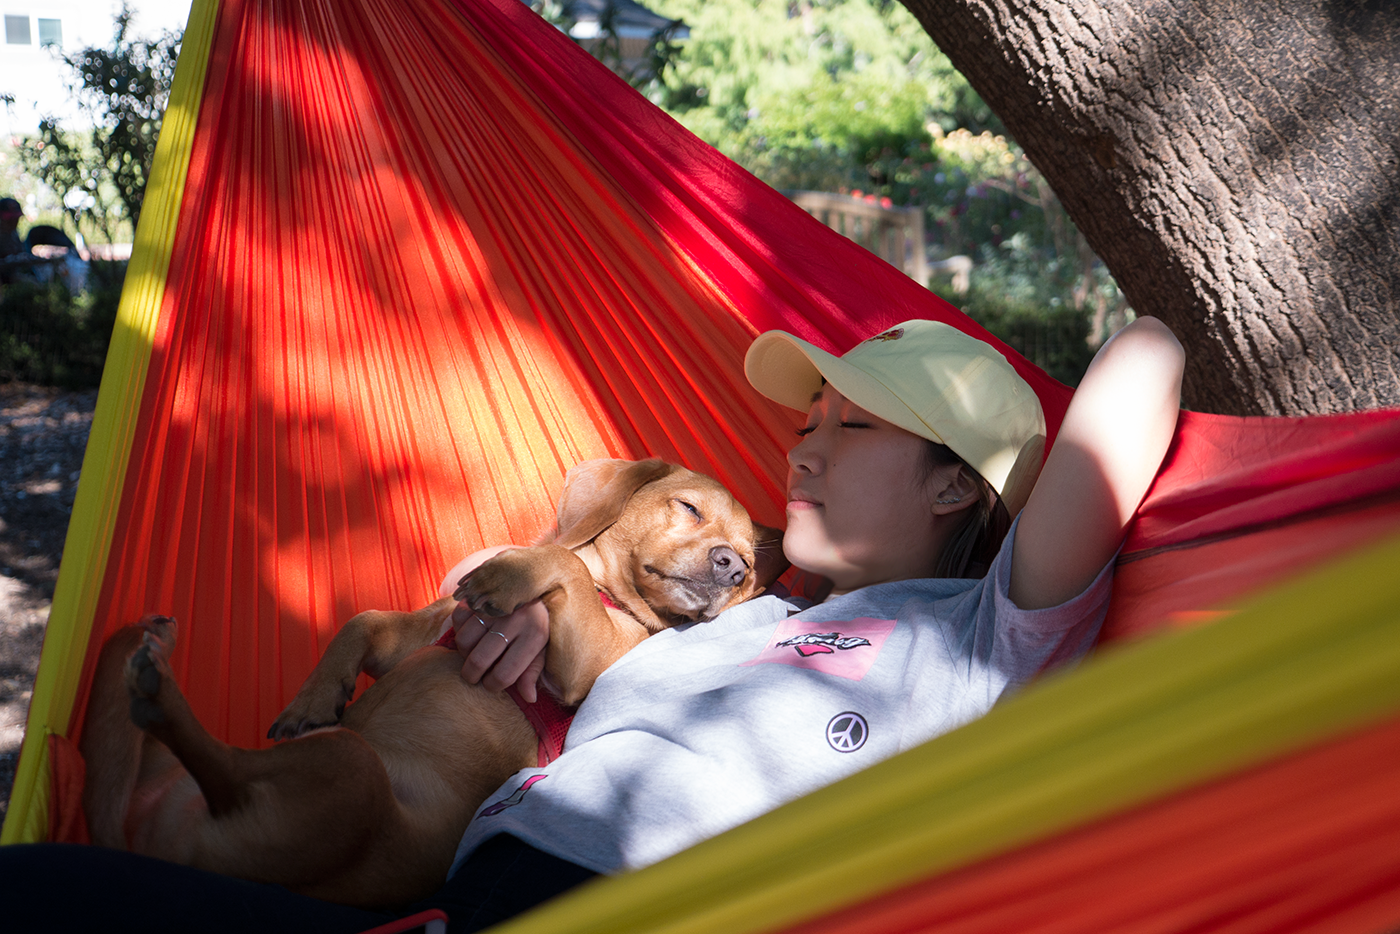 Anna Lee with Bentley, Hoang M Nguyen of HoBo on Eno Hammock Sunshine Double Nest. Using the Atlas XL Hammock strap. More info @ www.hobo.life